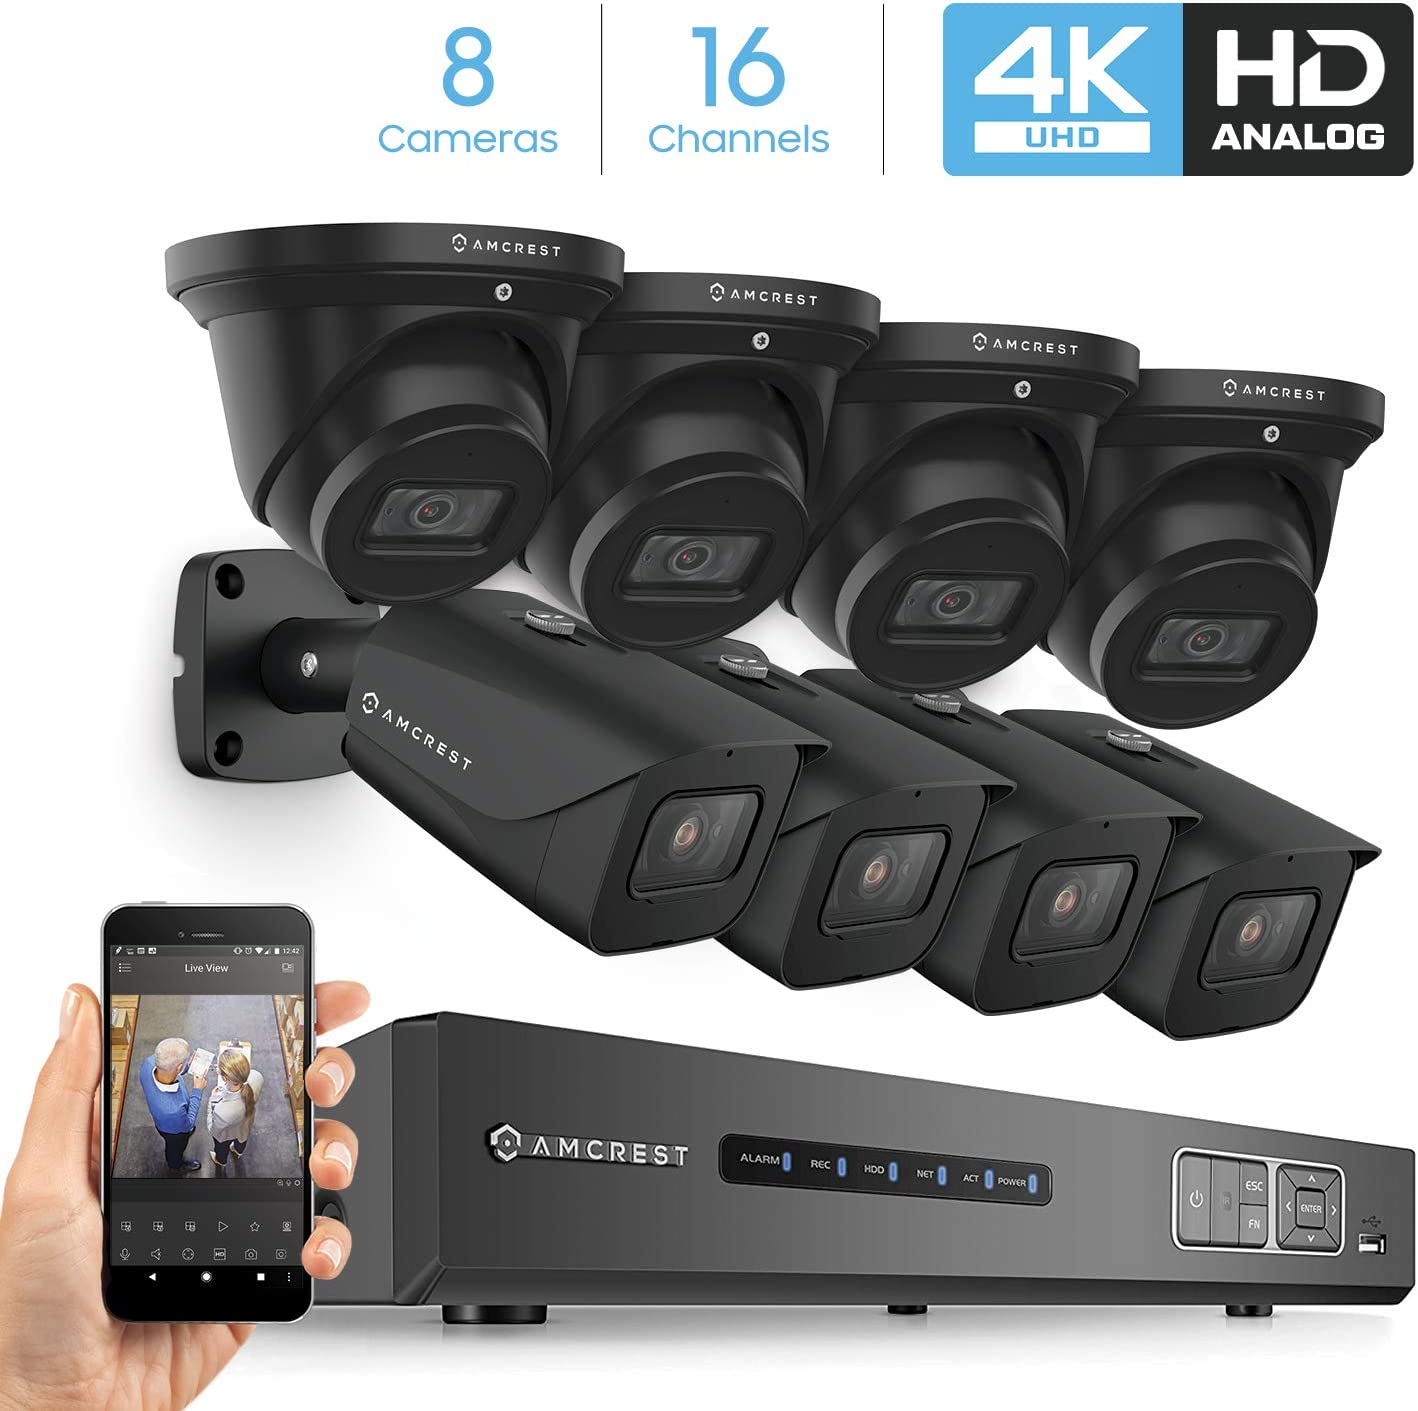 Amcrest 4K Security Camera System 16CH 8MP Video DVR with 8X 4K 8-Megapixel Indoor Outdoor Weatherproof IP67 Bullet & Dome Cameras, 2.8mm Lens, HDD Not Included, for Home Business (AMDV8M16-4B4D-B)